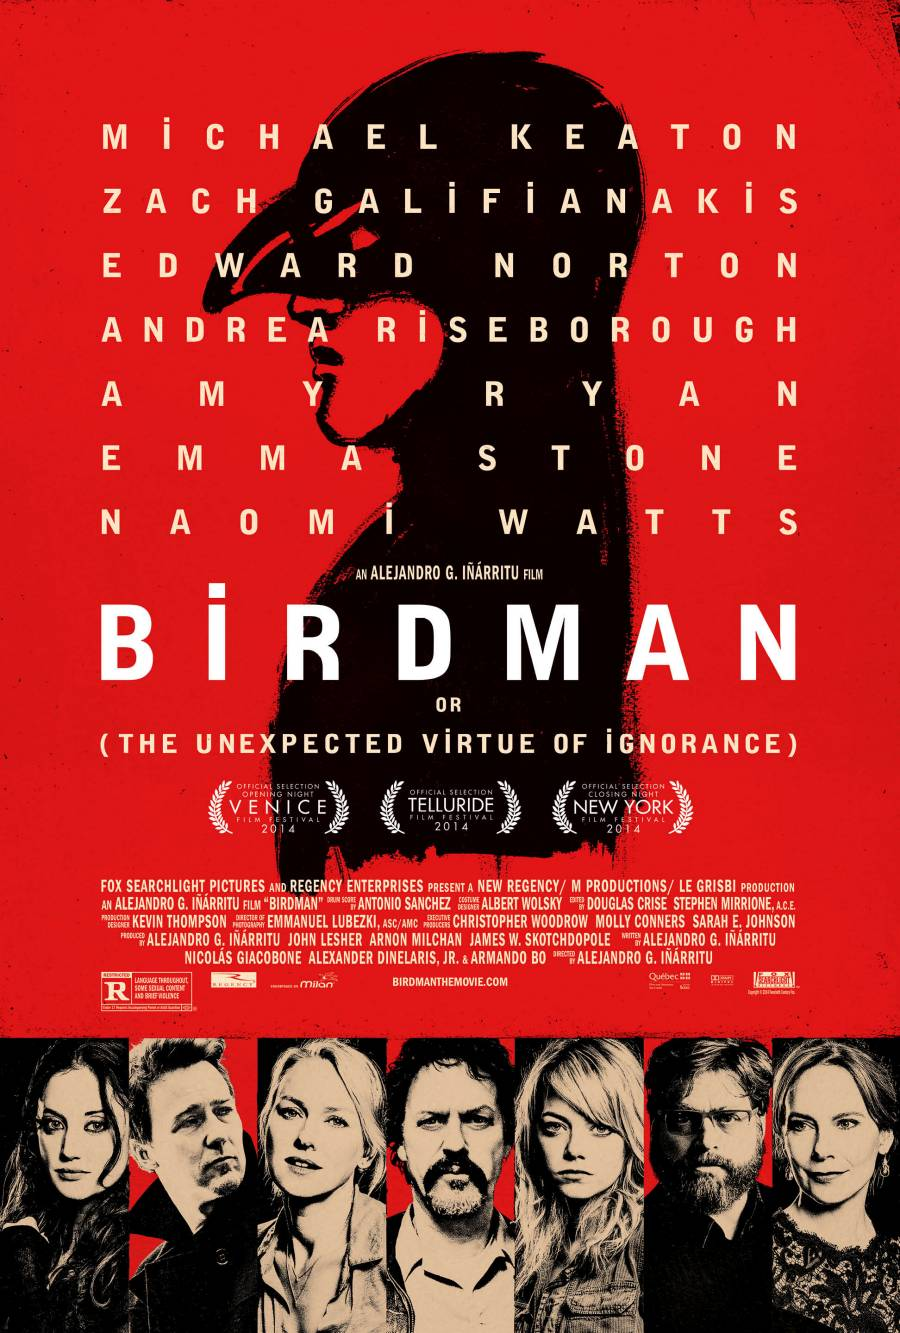 Michael Keaton's Birdman Looms Over The Cast In Awesome New Poster